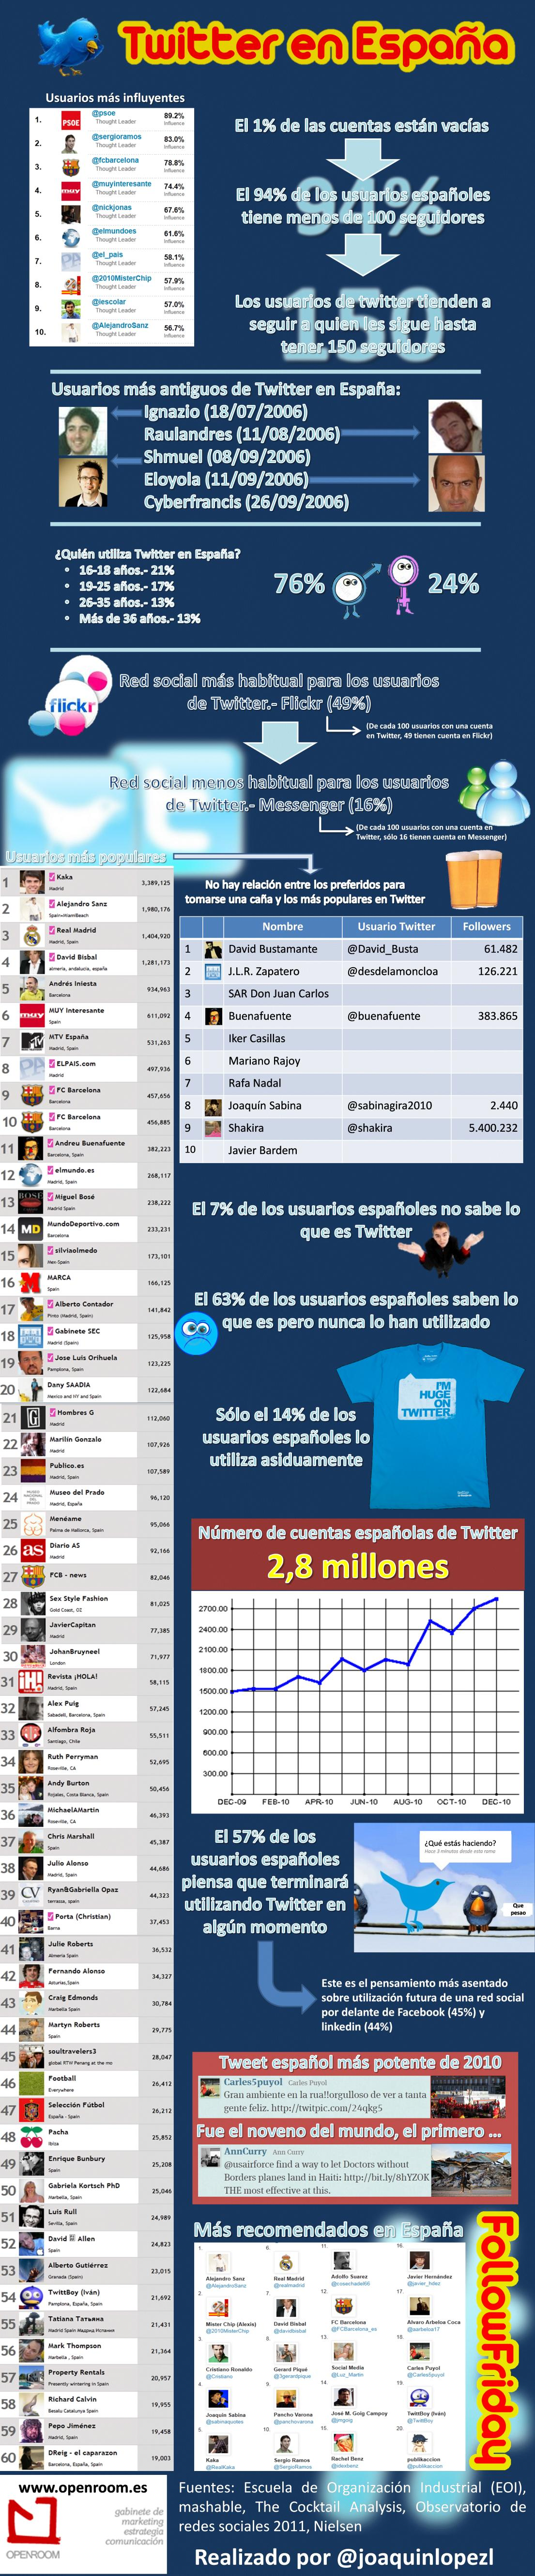 formacion redes sociales La red de microblogging Twitter en Espaa